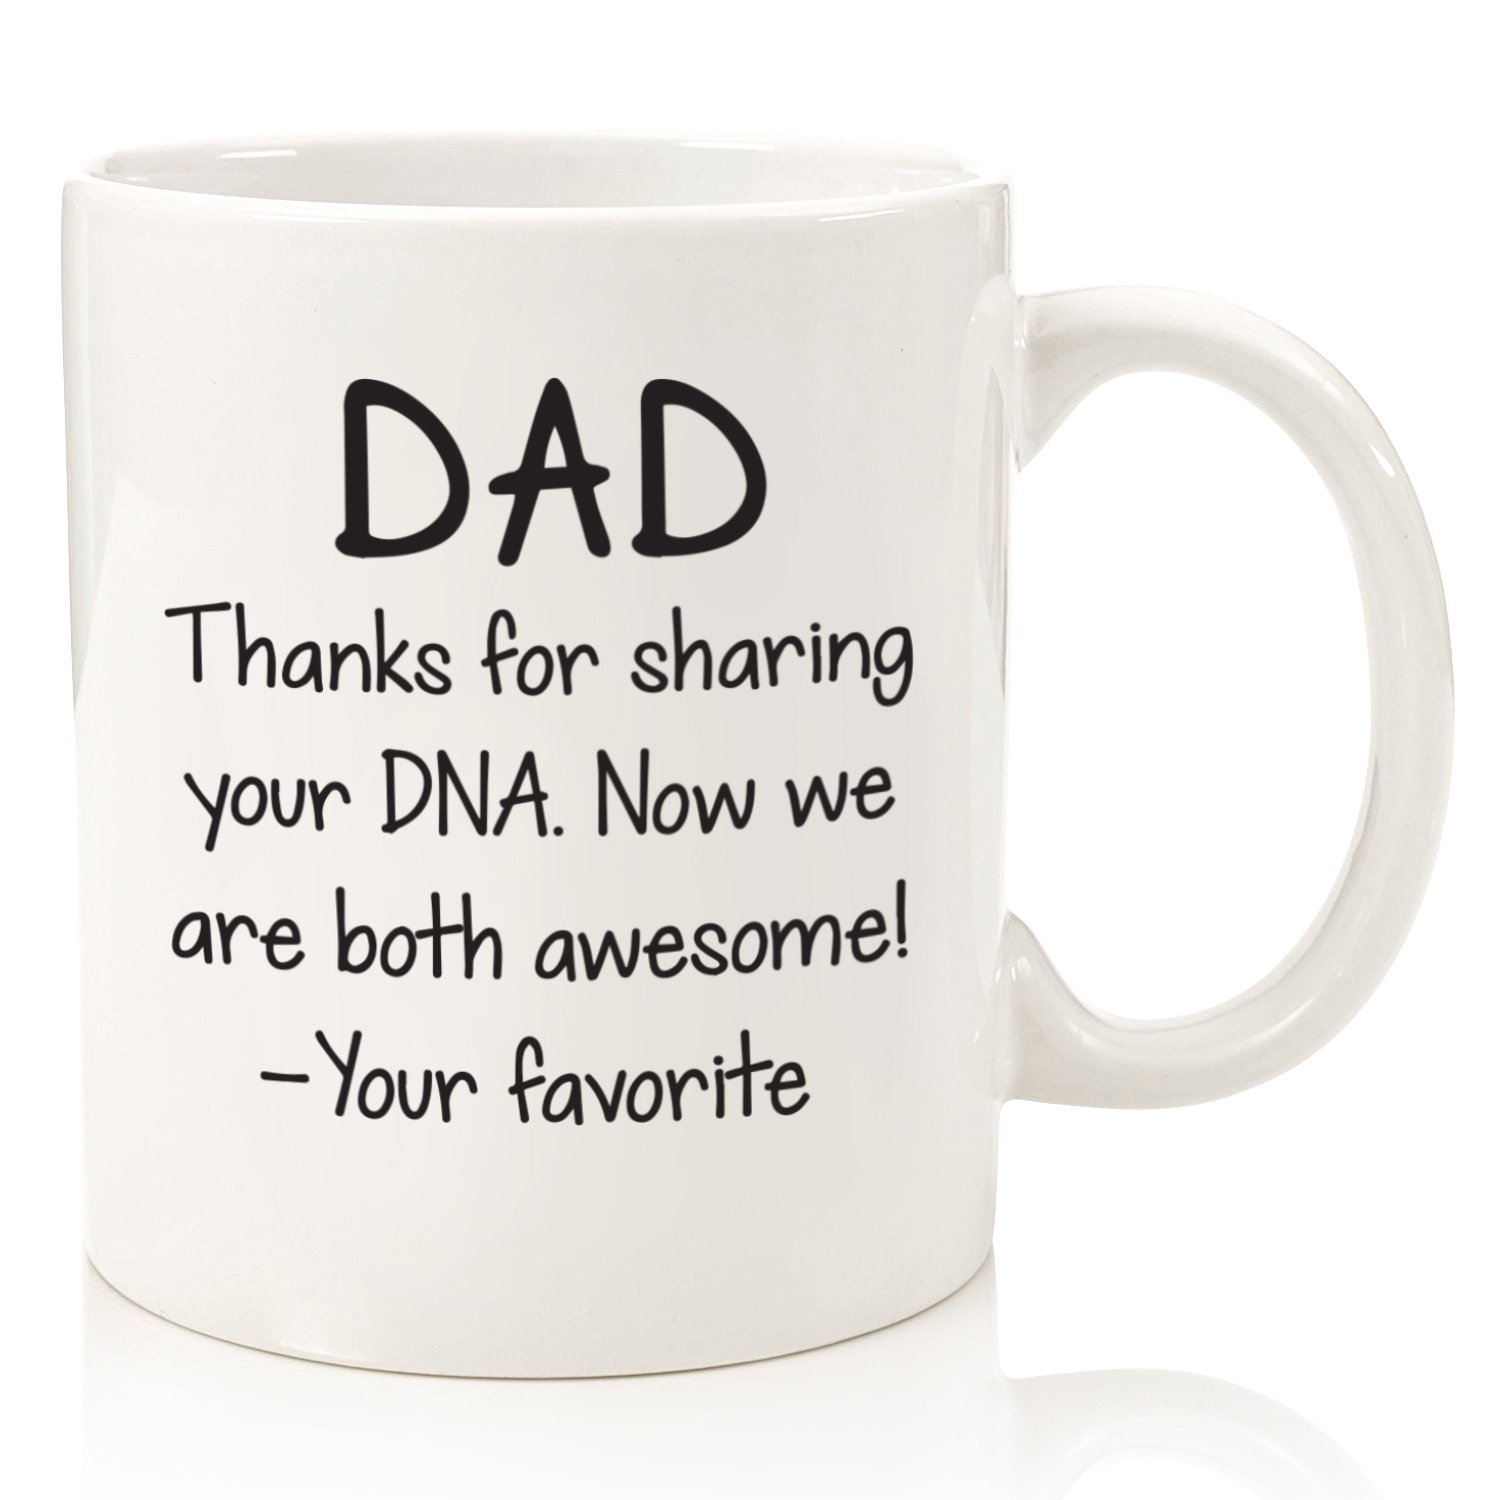 Dad Gifts - Funny Mug - Thanks For Sharing Your DNA - Best Dad Fathers Day Gifts - Unique Gag Gift For Him From Daughter, Son - Cool Birthday Present Idea For Men, Guys - Fun Novelty Coffee Cup - 11oz